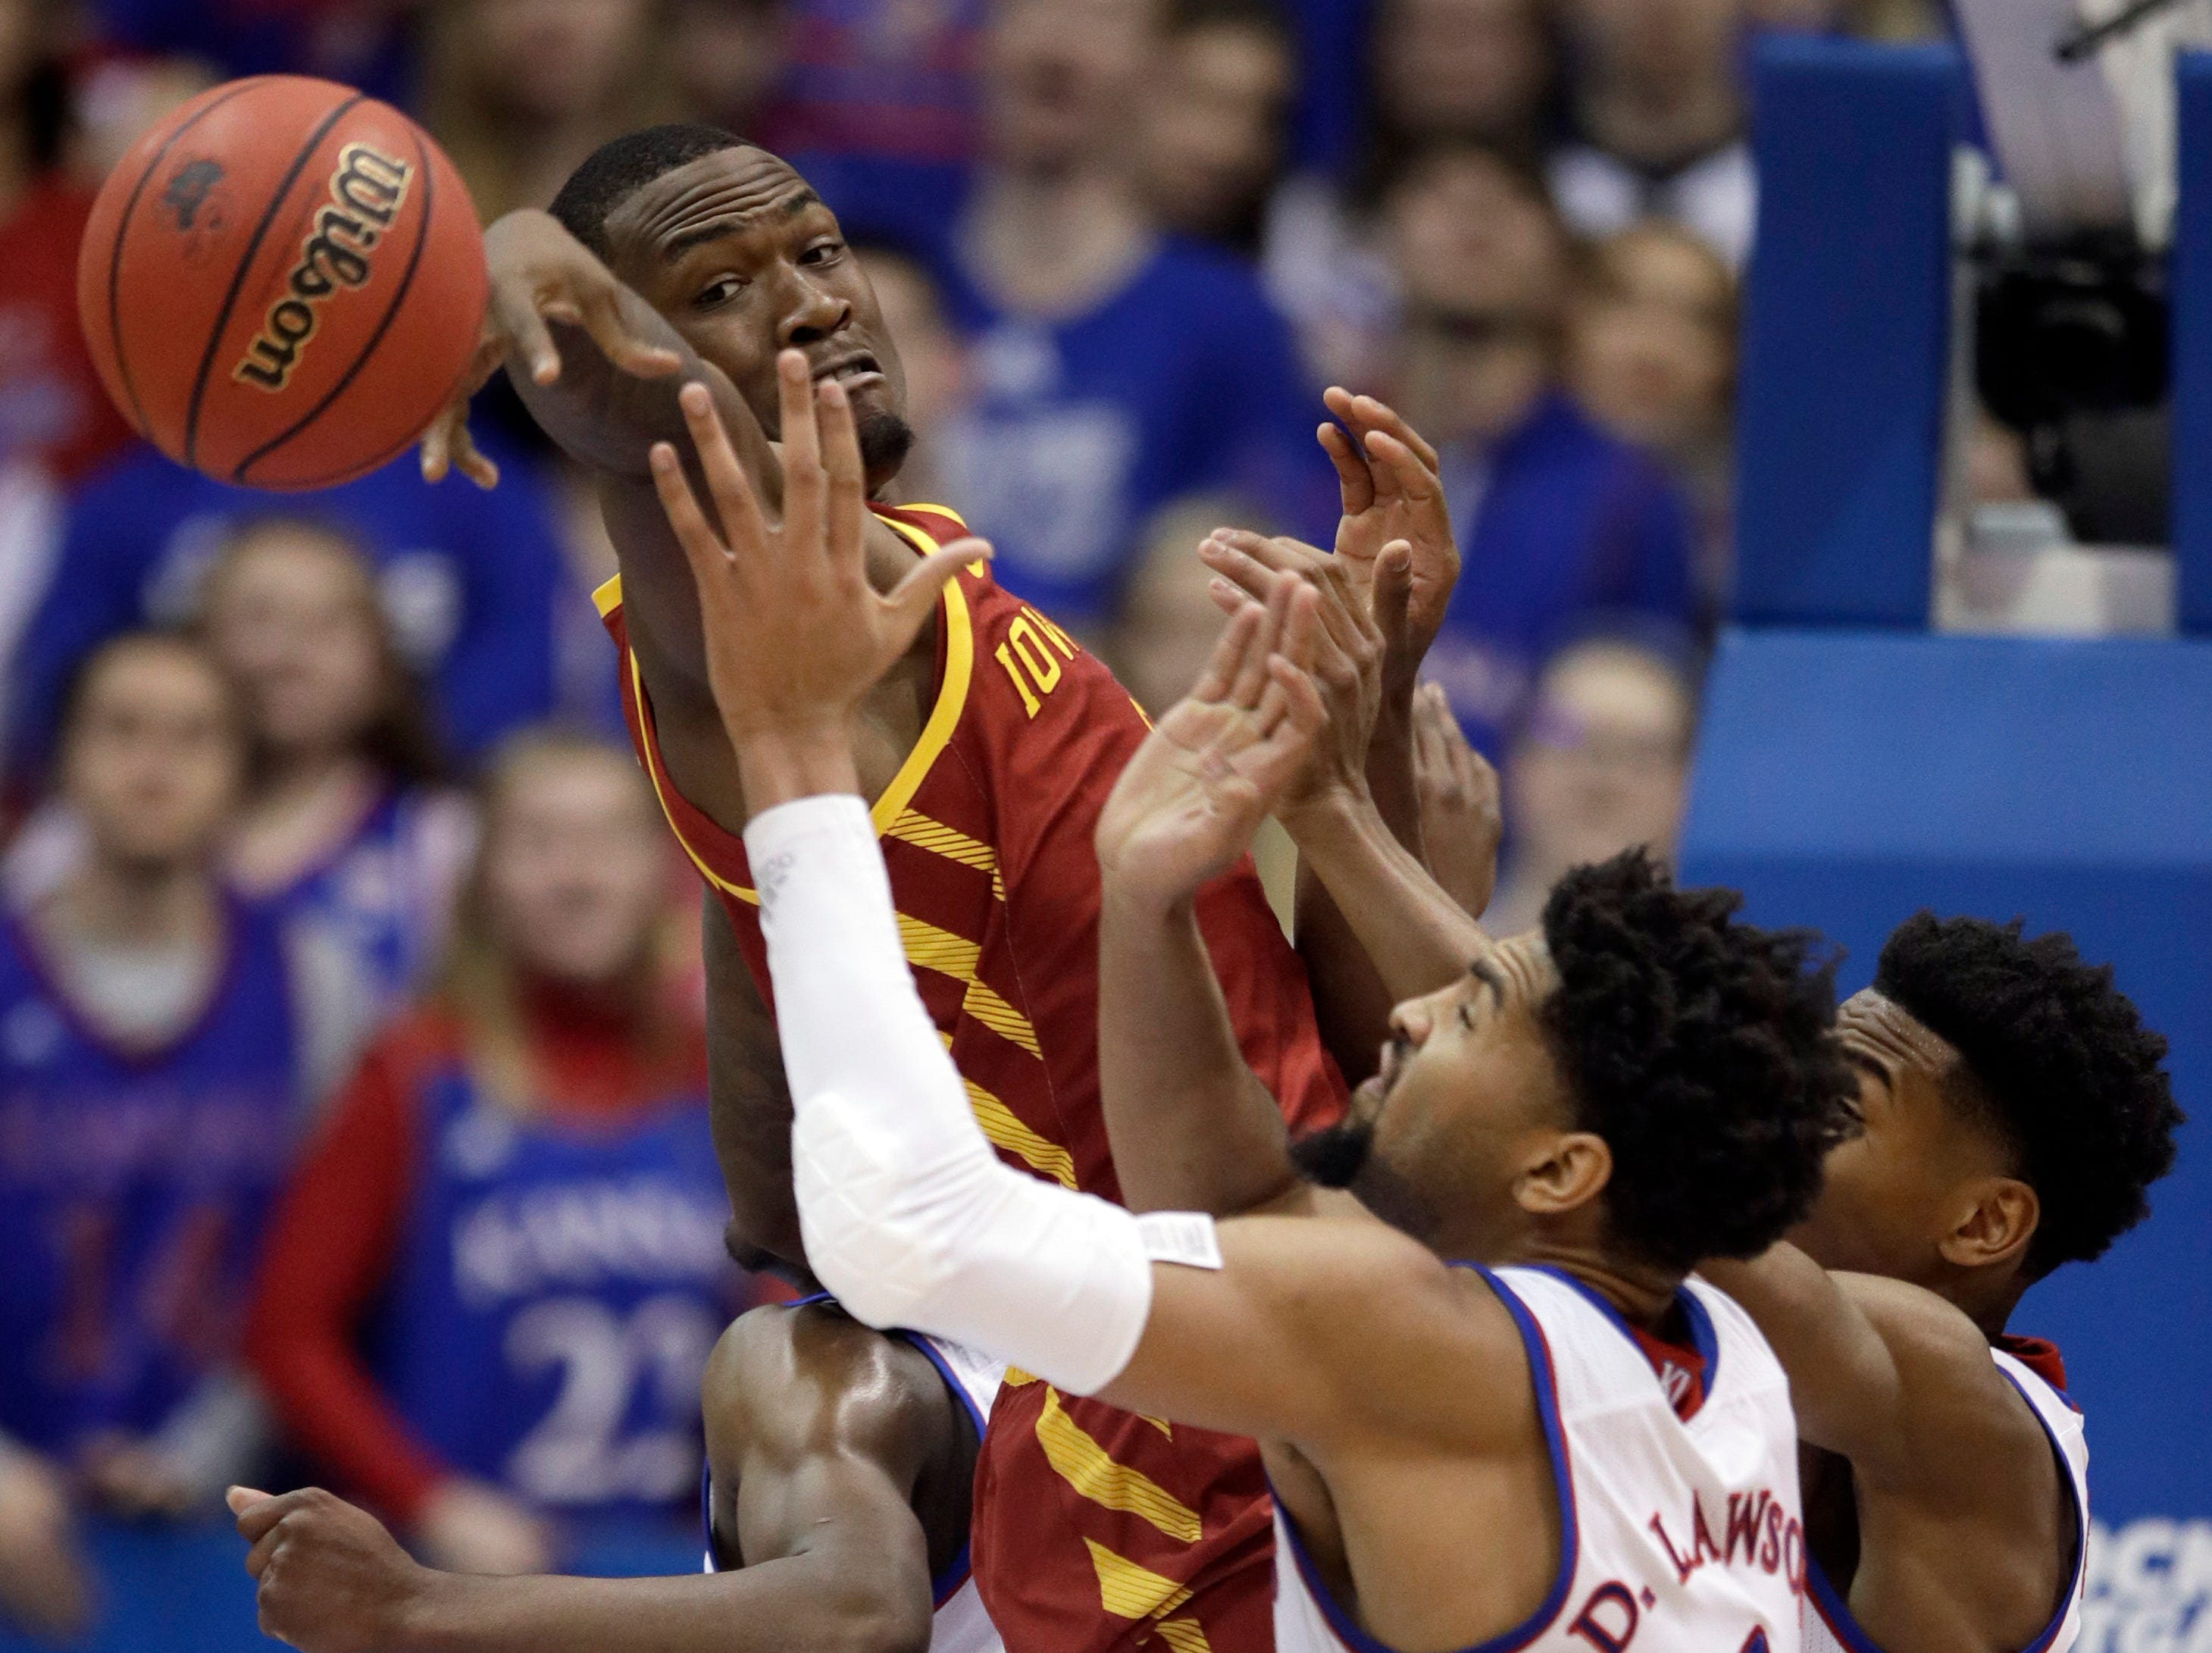 Iowa State forward Cameron Lard, left, tries to rebound over Kansas forward Dedric Lawson (1) and guard Ochai Agbaji, right, during the first half of an NCAA college basketball game in Lawrence, Kan., Monday, Jan. 21, 2019.